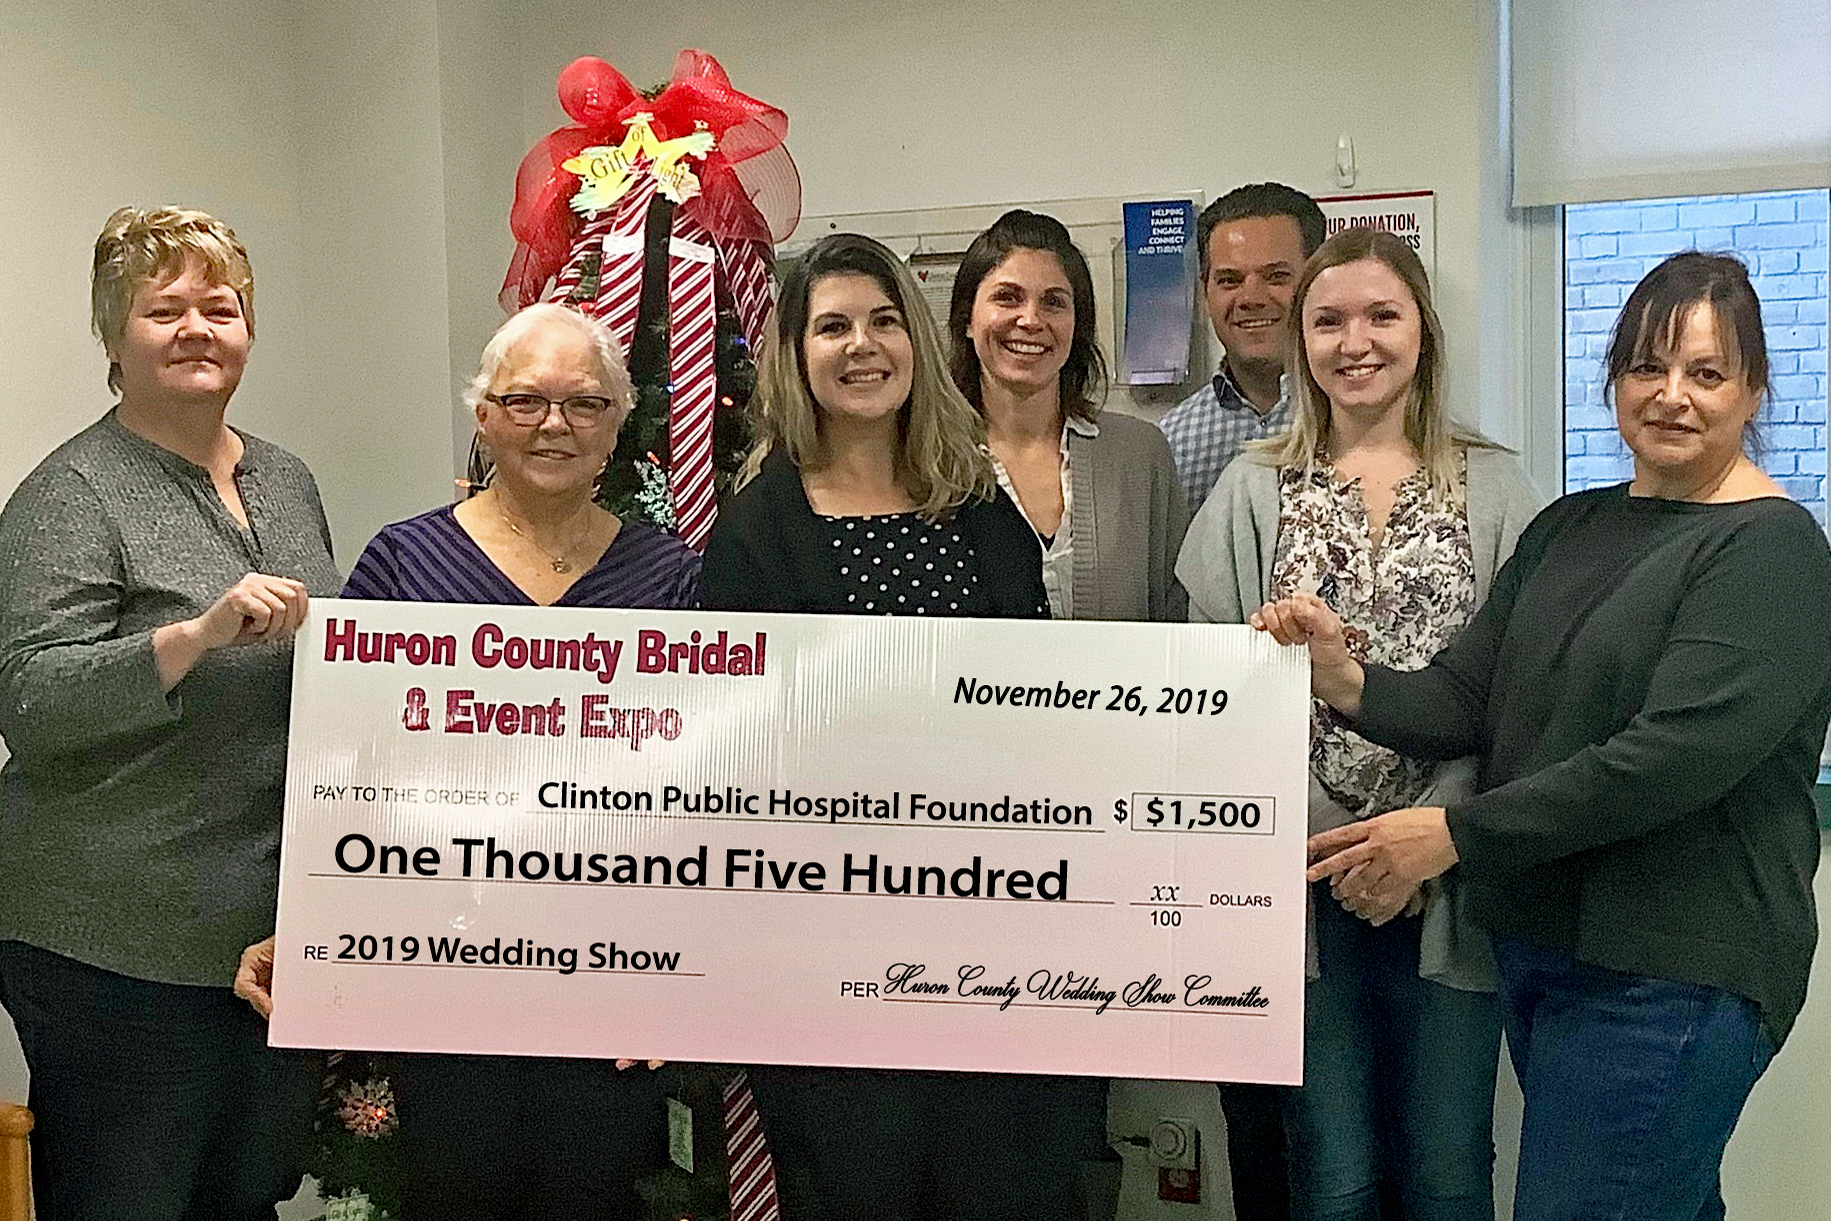 Huron County Wedding Show Continues to Support CPH